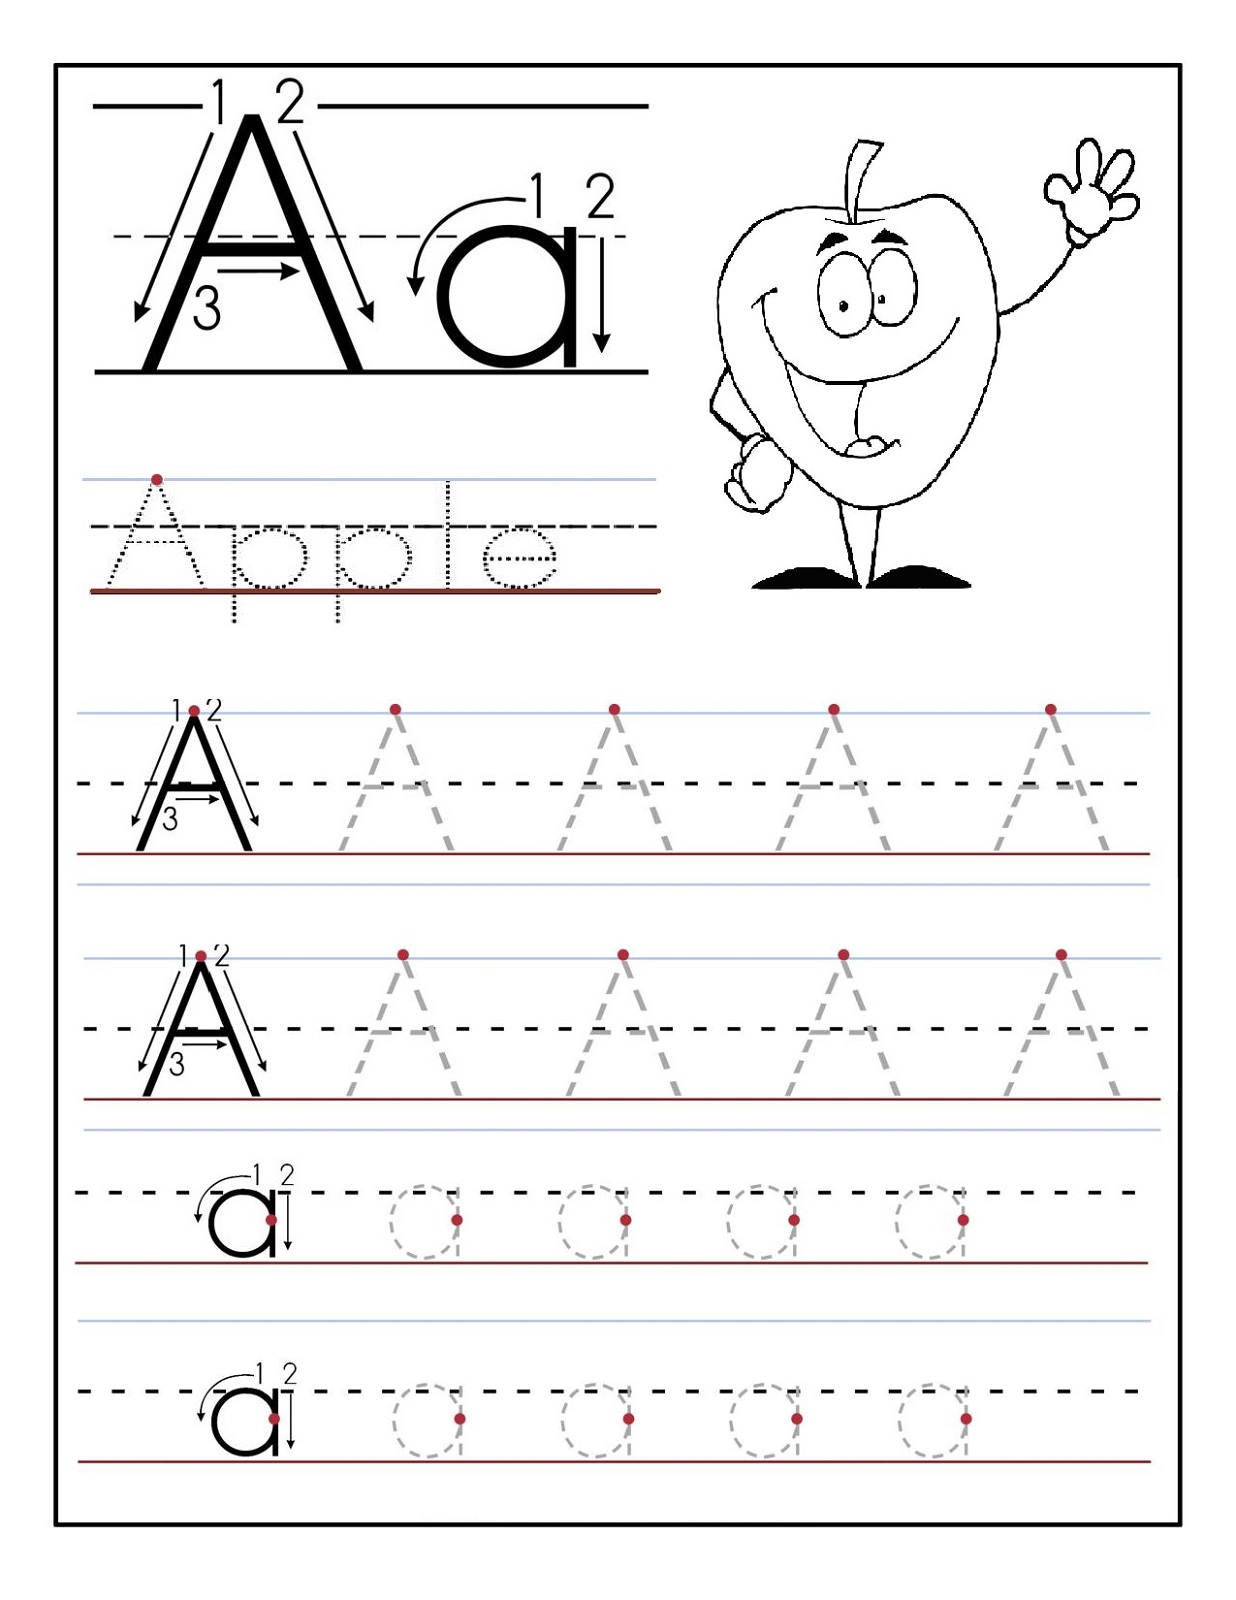 Worksheet Printable Letters For Preschool recognizing and matching identical letters free reading worksheets preschool printables tracing